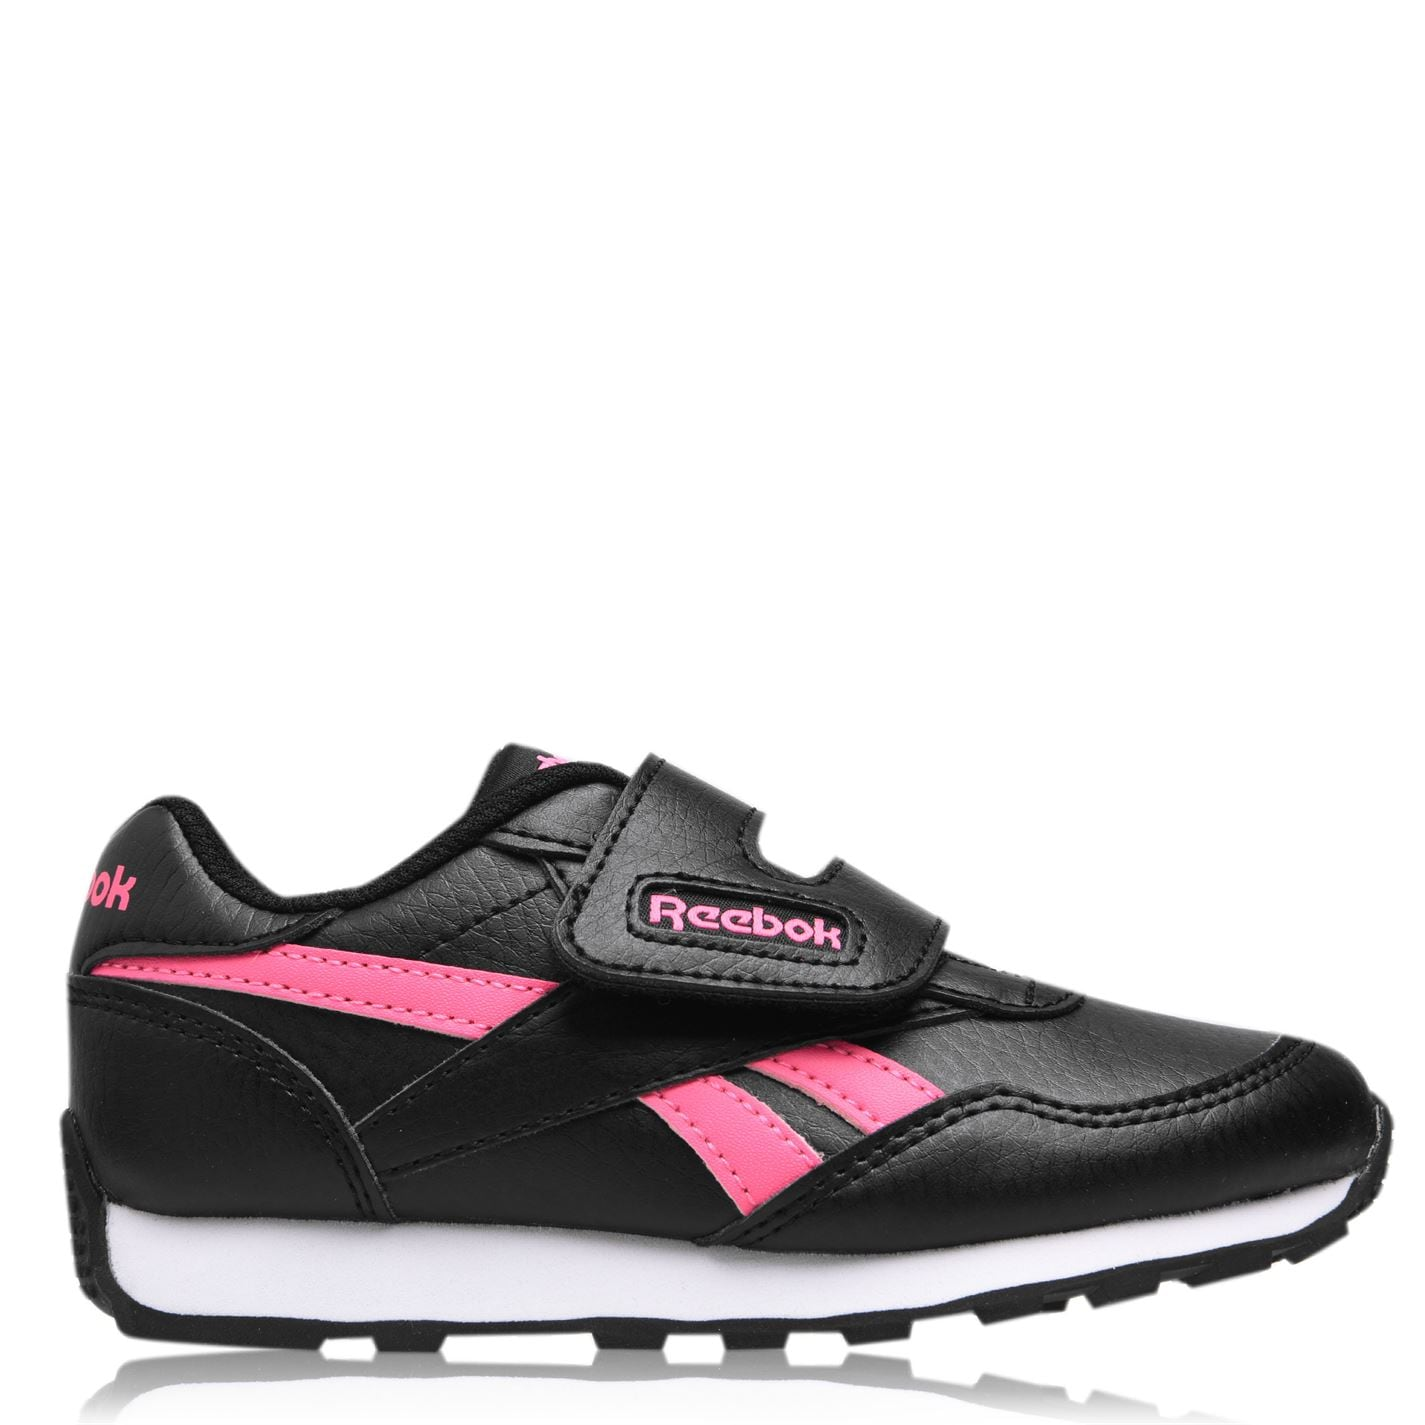 Reebok Rewind Girls Trainers BLACK/SOPINK/SOPINK